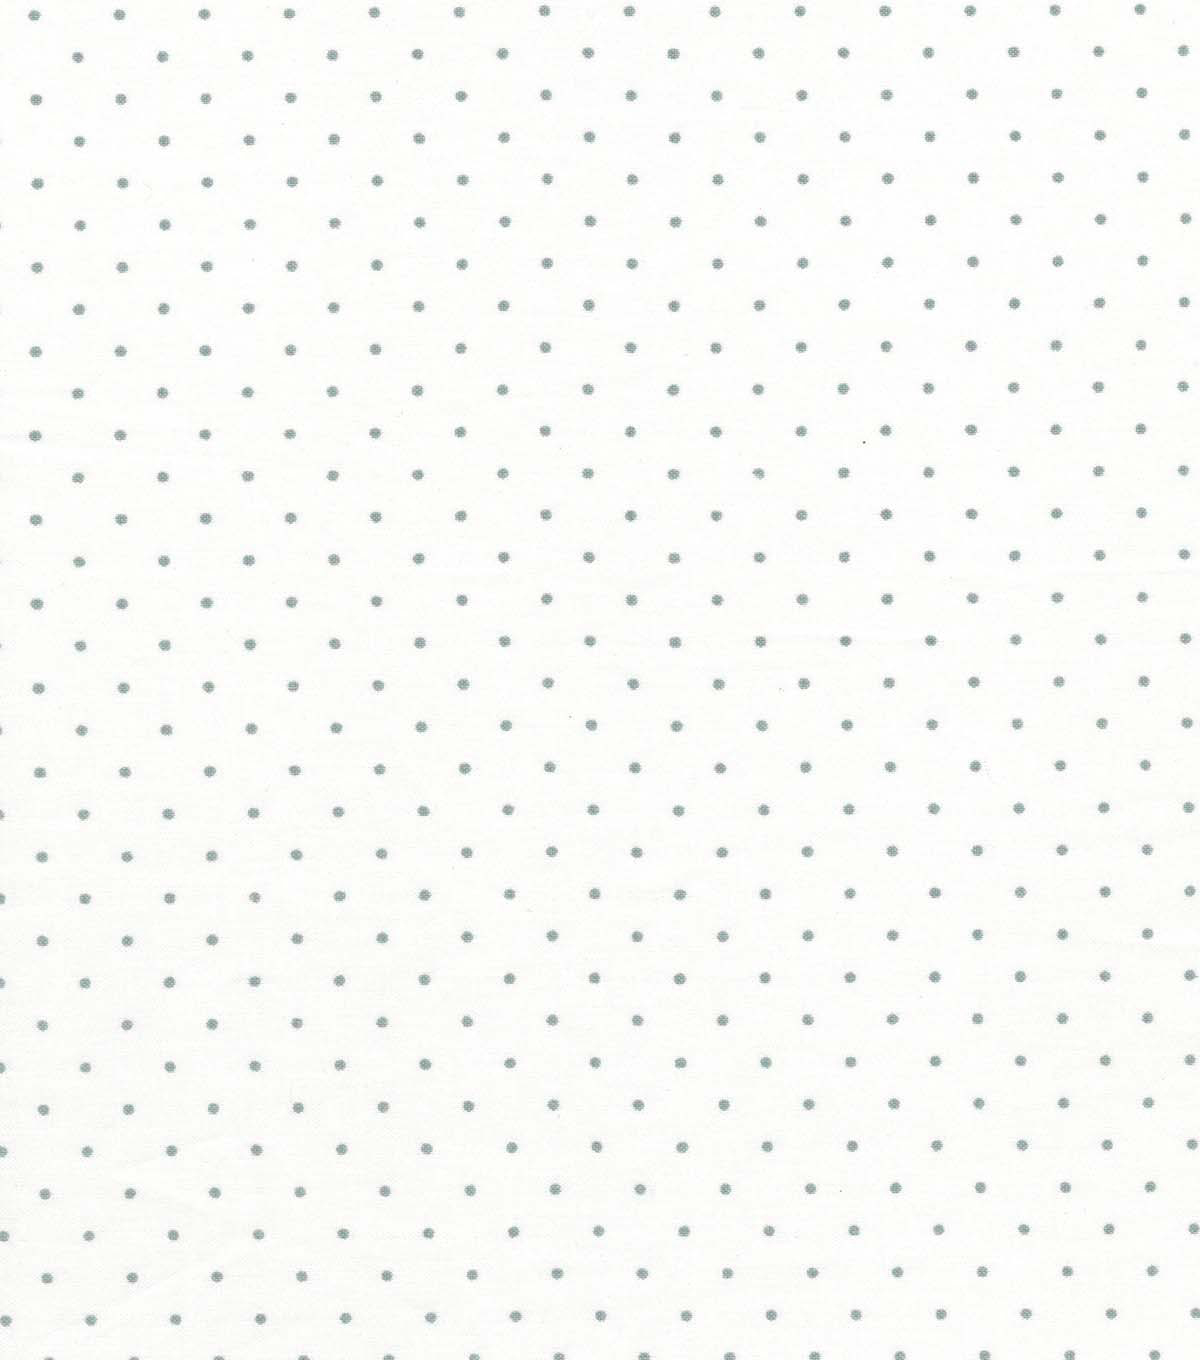 Quilter's Showcase Cotton Fabric 44'' Light Gray Aspirin Dots                      Quilter's Showcase Cotton Fabric 44'' Light Gray Aspirin Dots by Quilter's Showcase